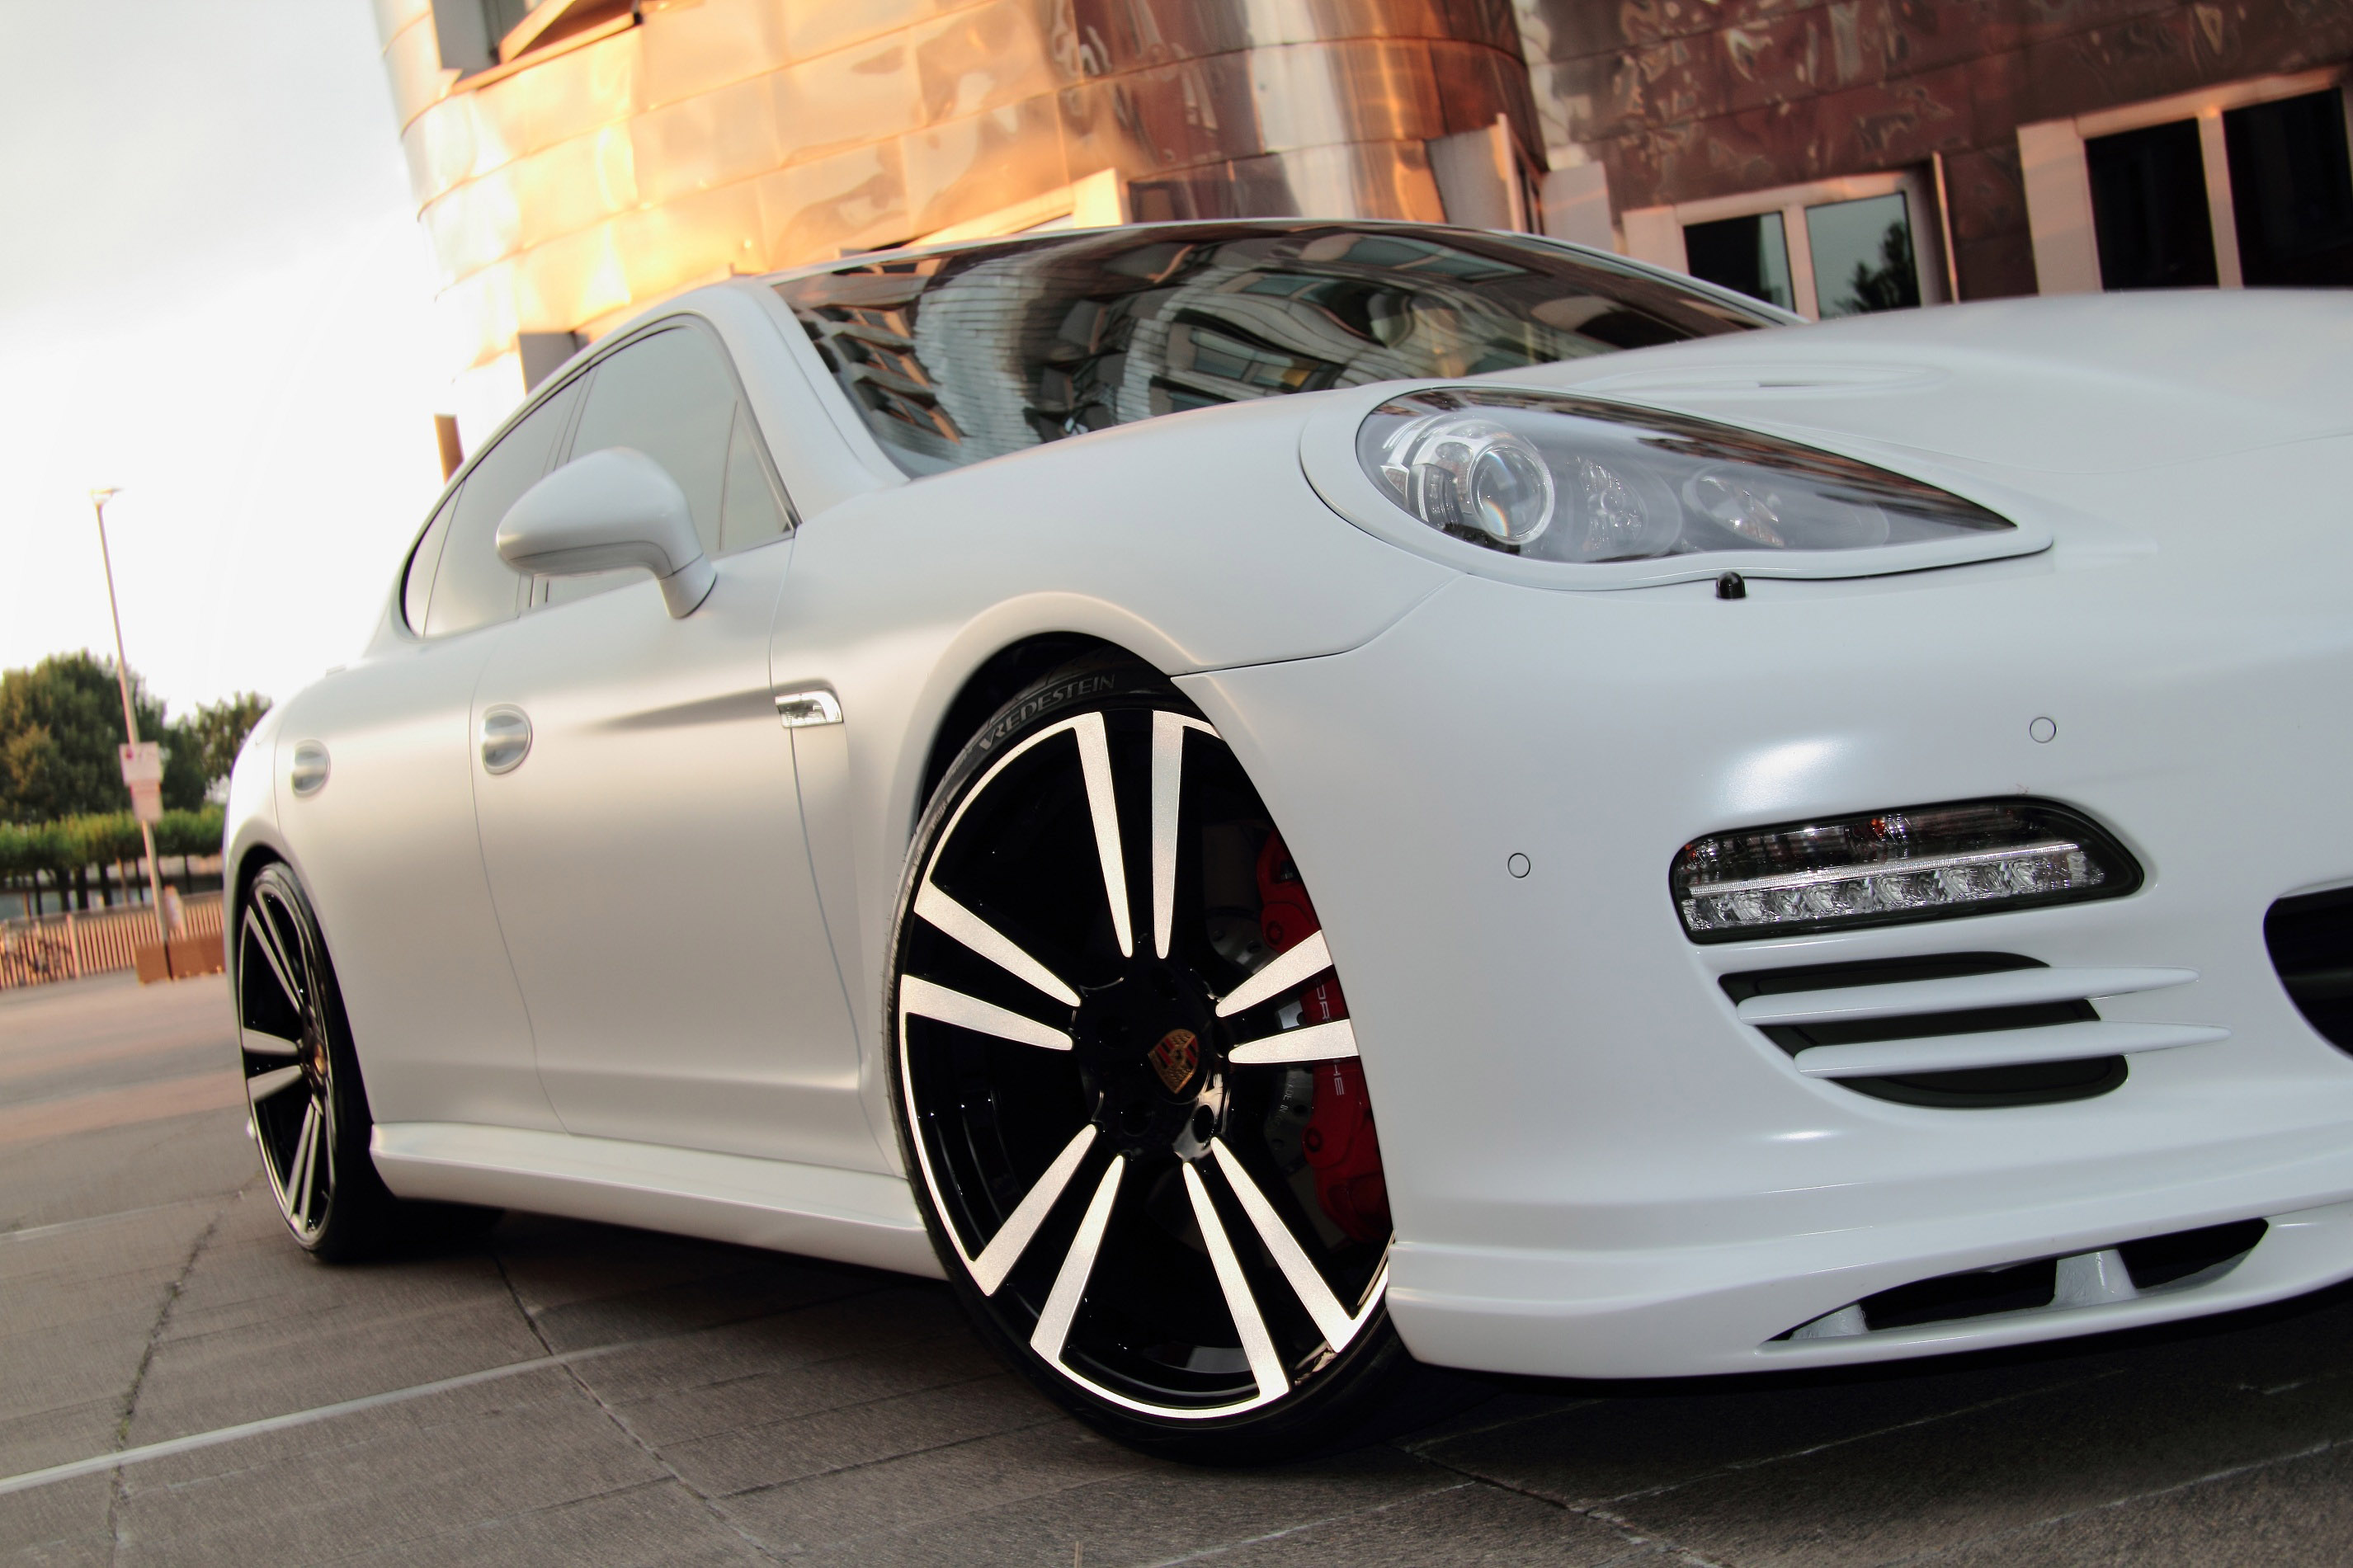 anderson germany porsche panamera gts white storm edition 01jpg